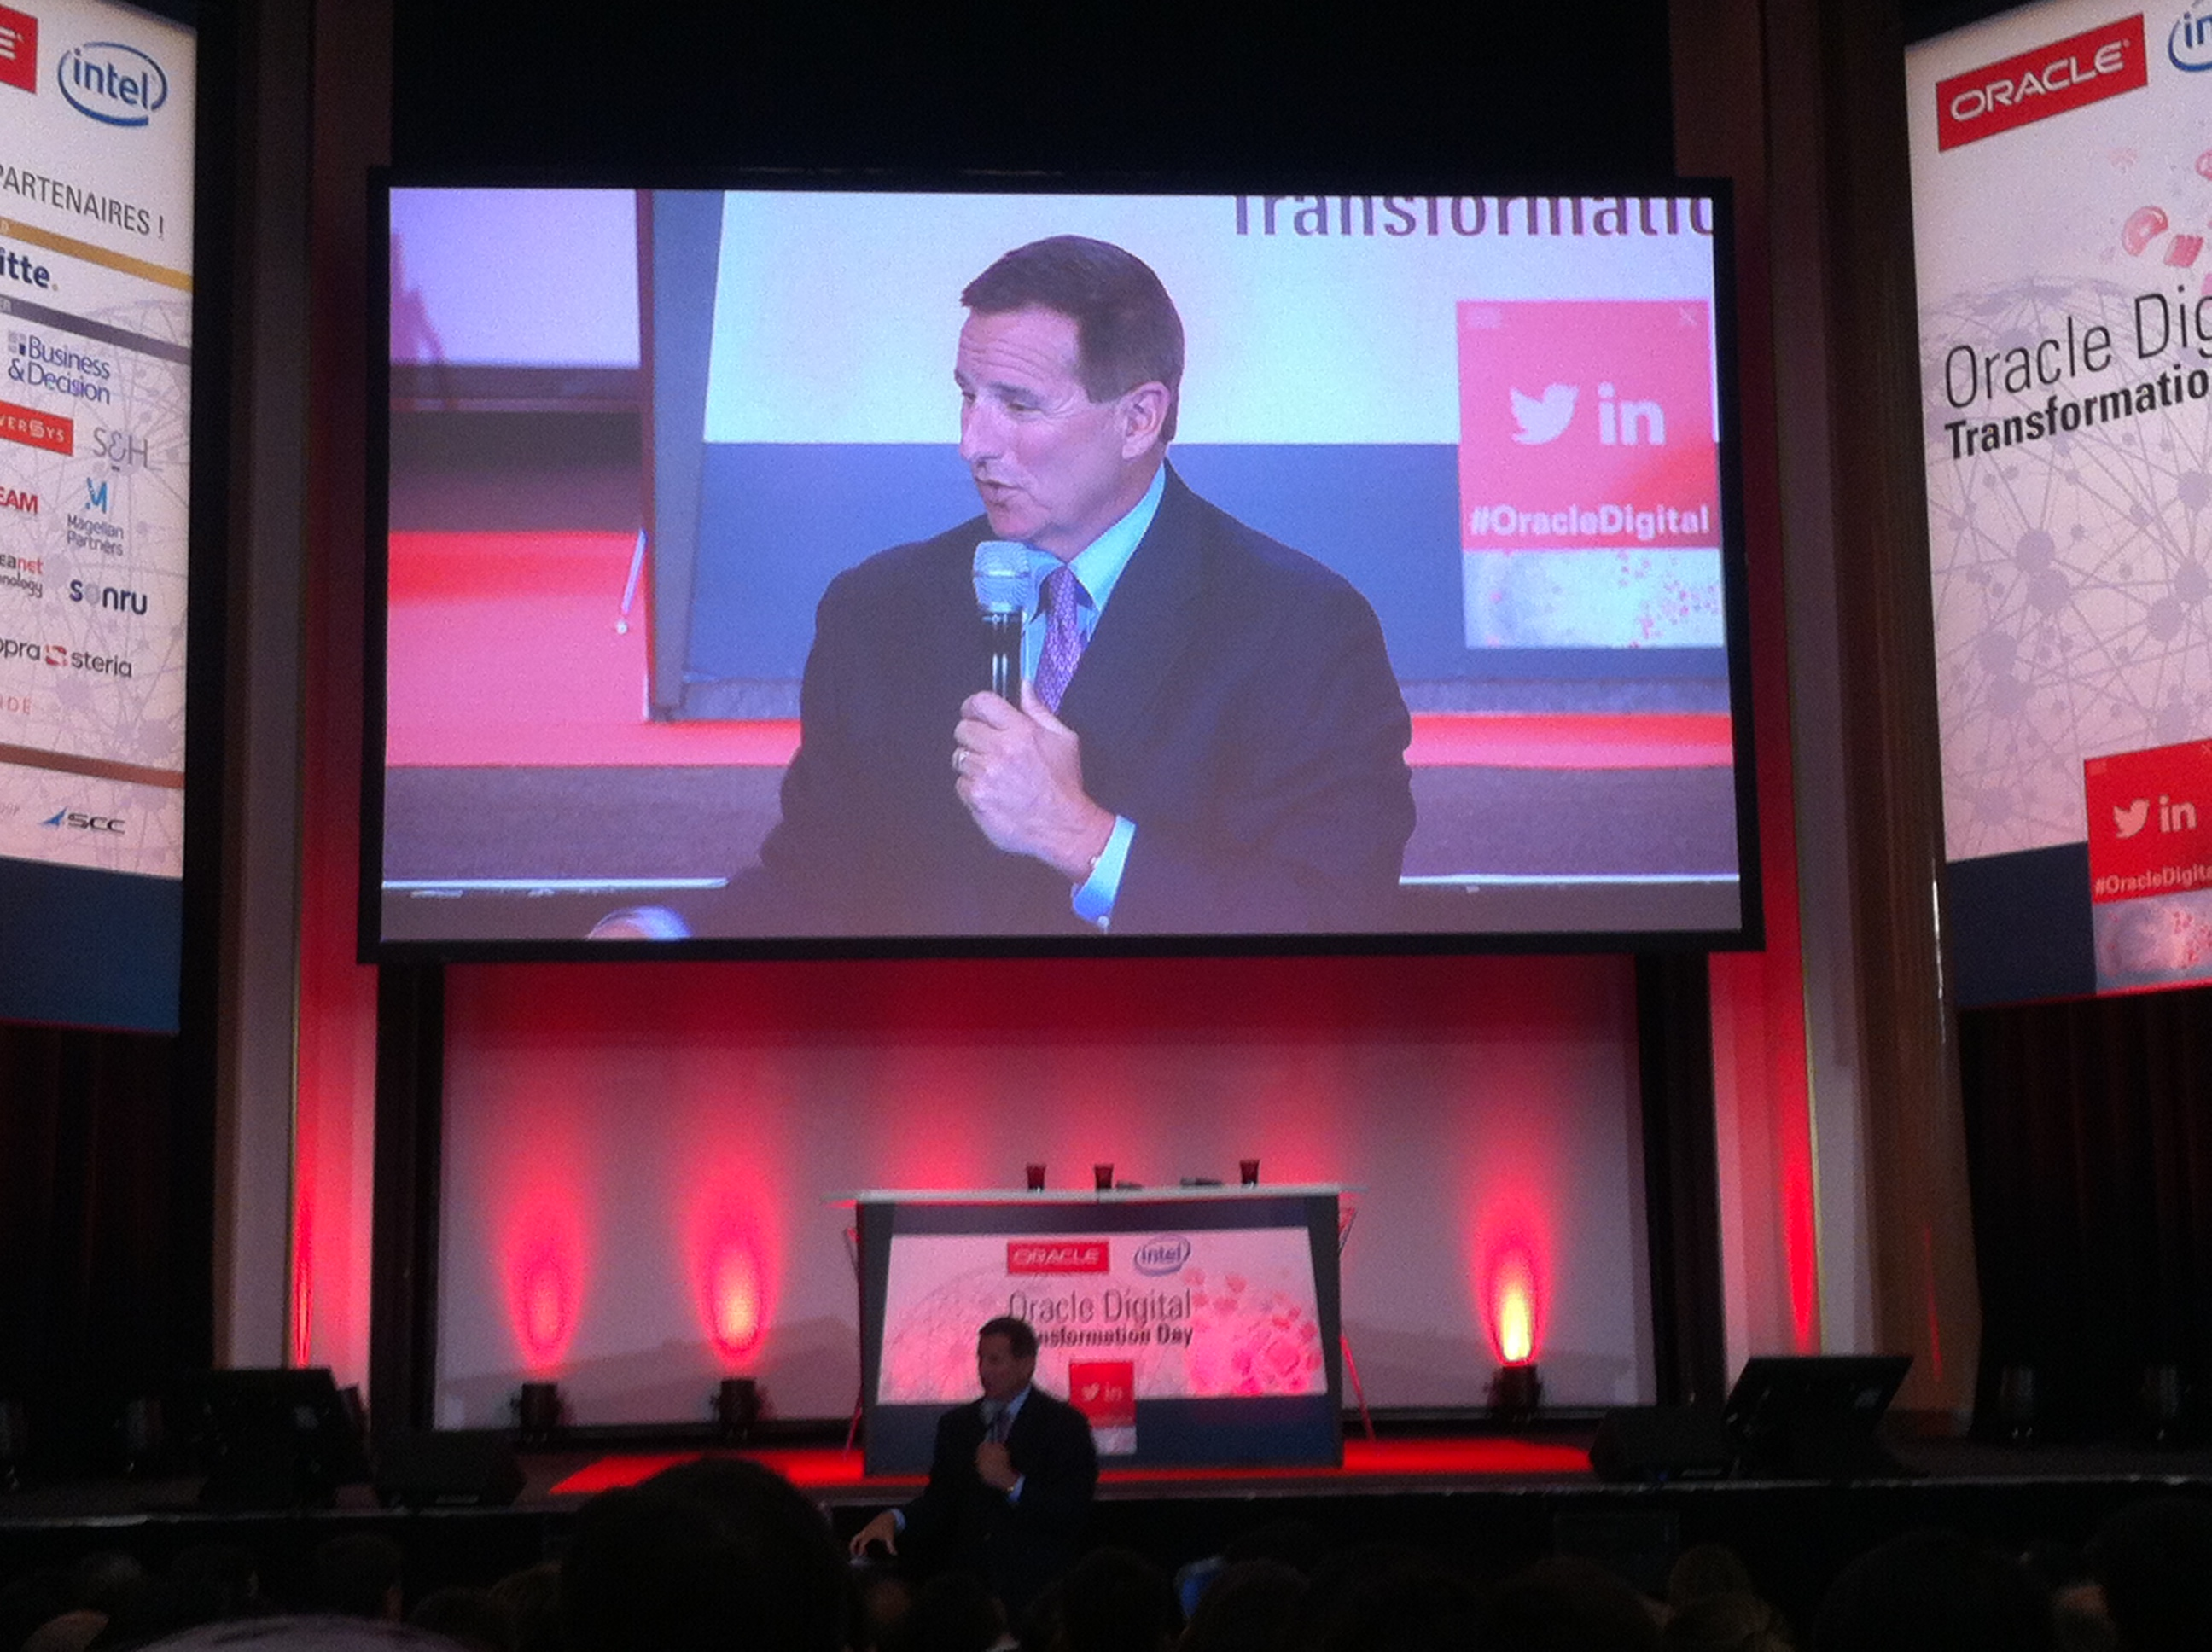 Salon E-Commerce : Intervention de Mark Hurd, CEO d'Oracle Corporation